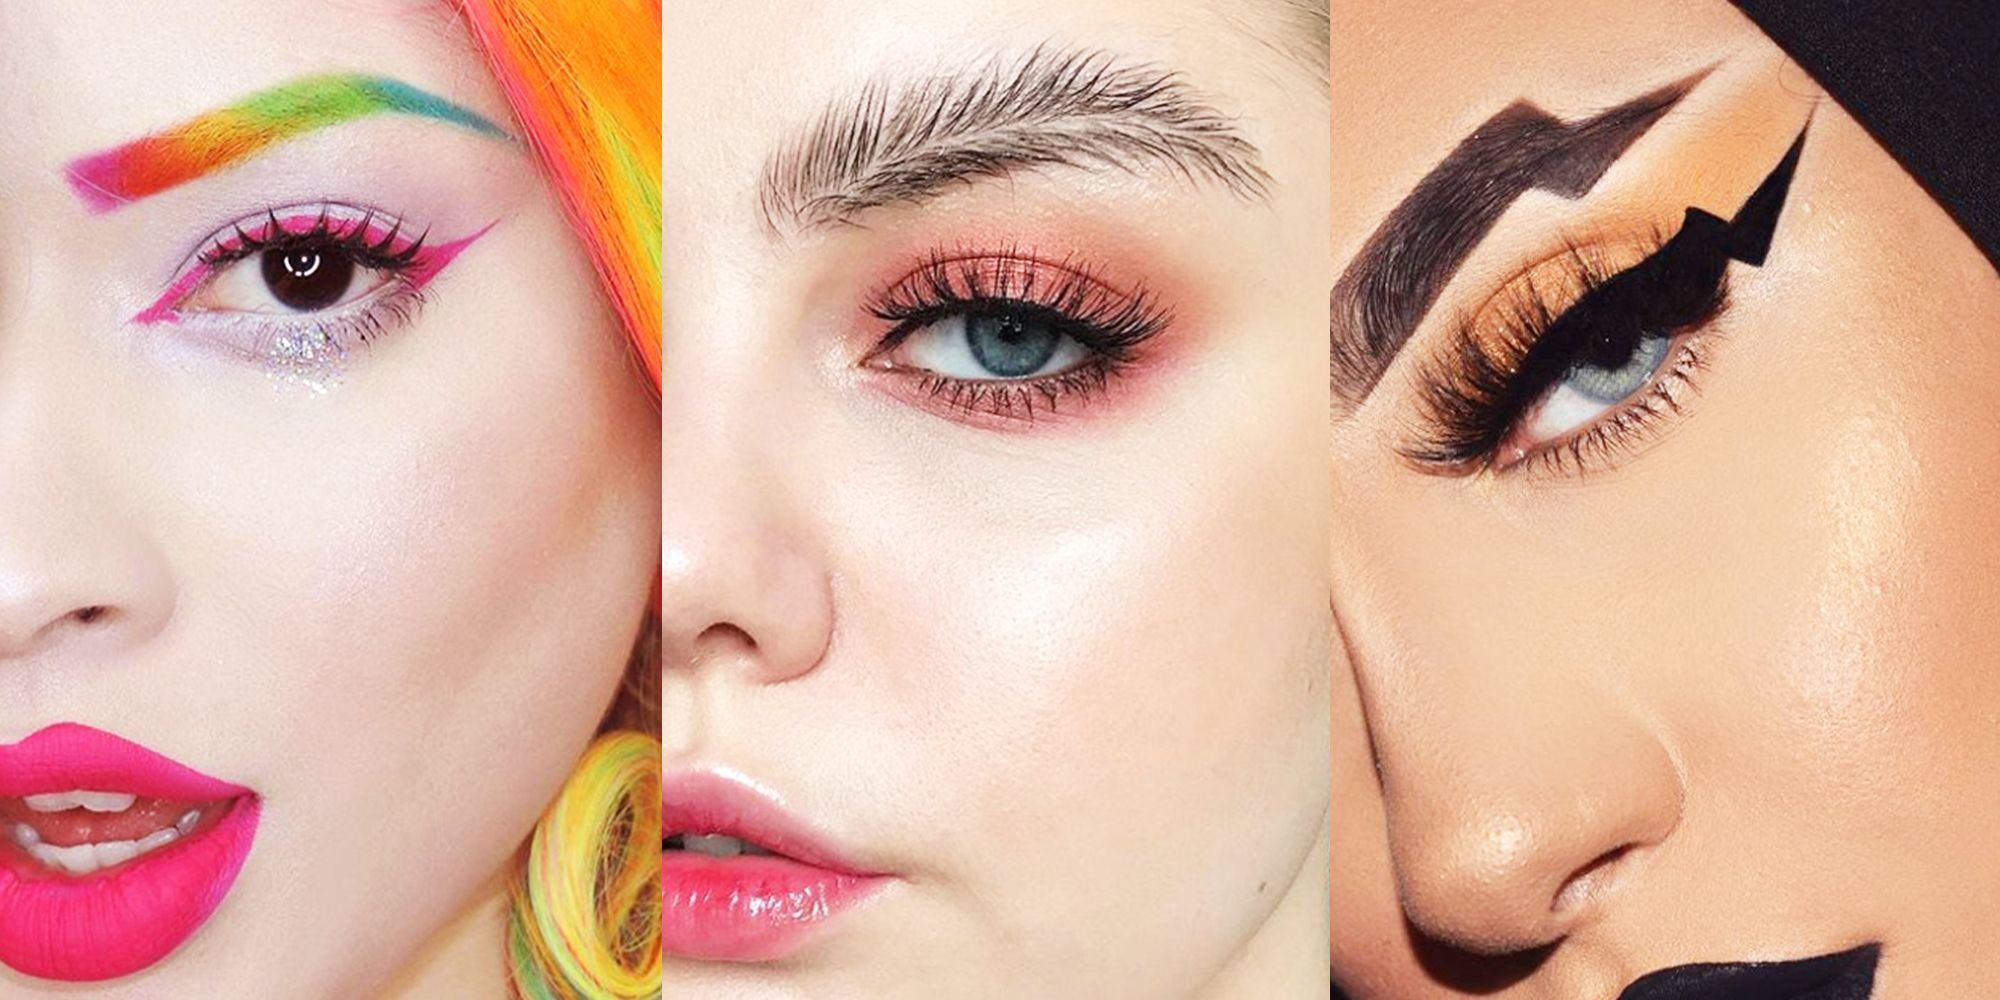 2017 Was The Year of the Insane Eyebrow